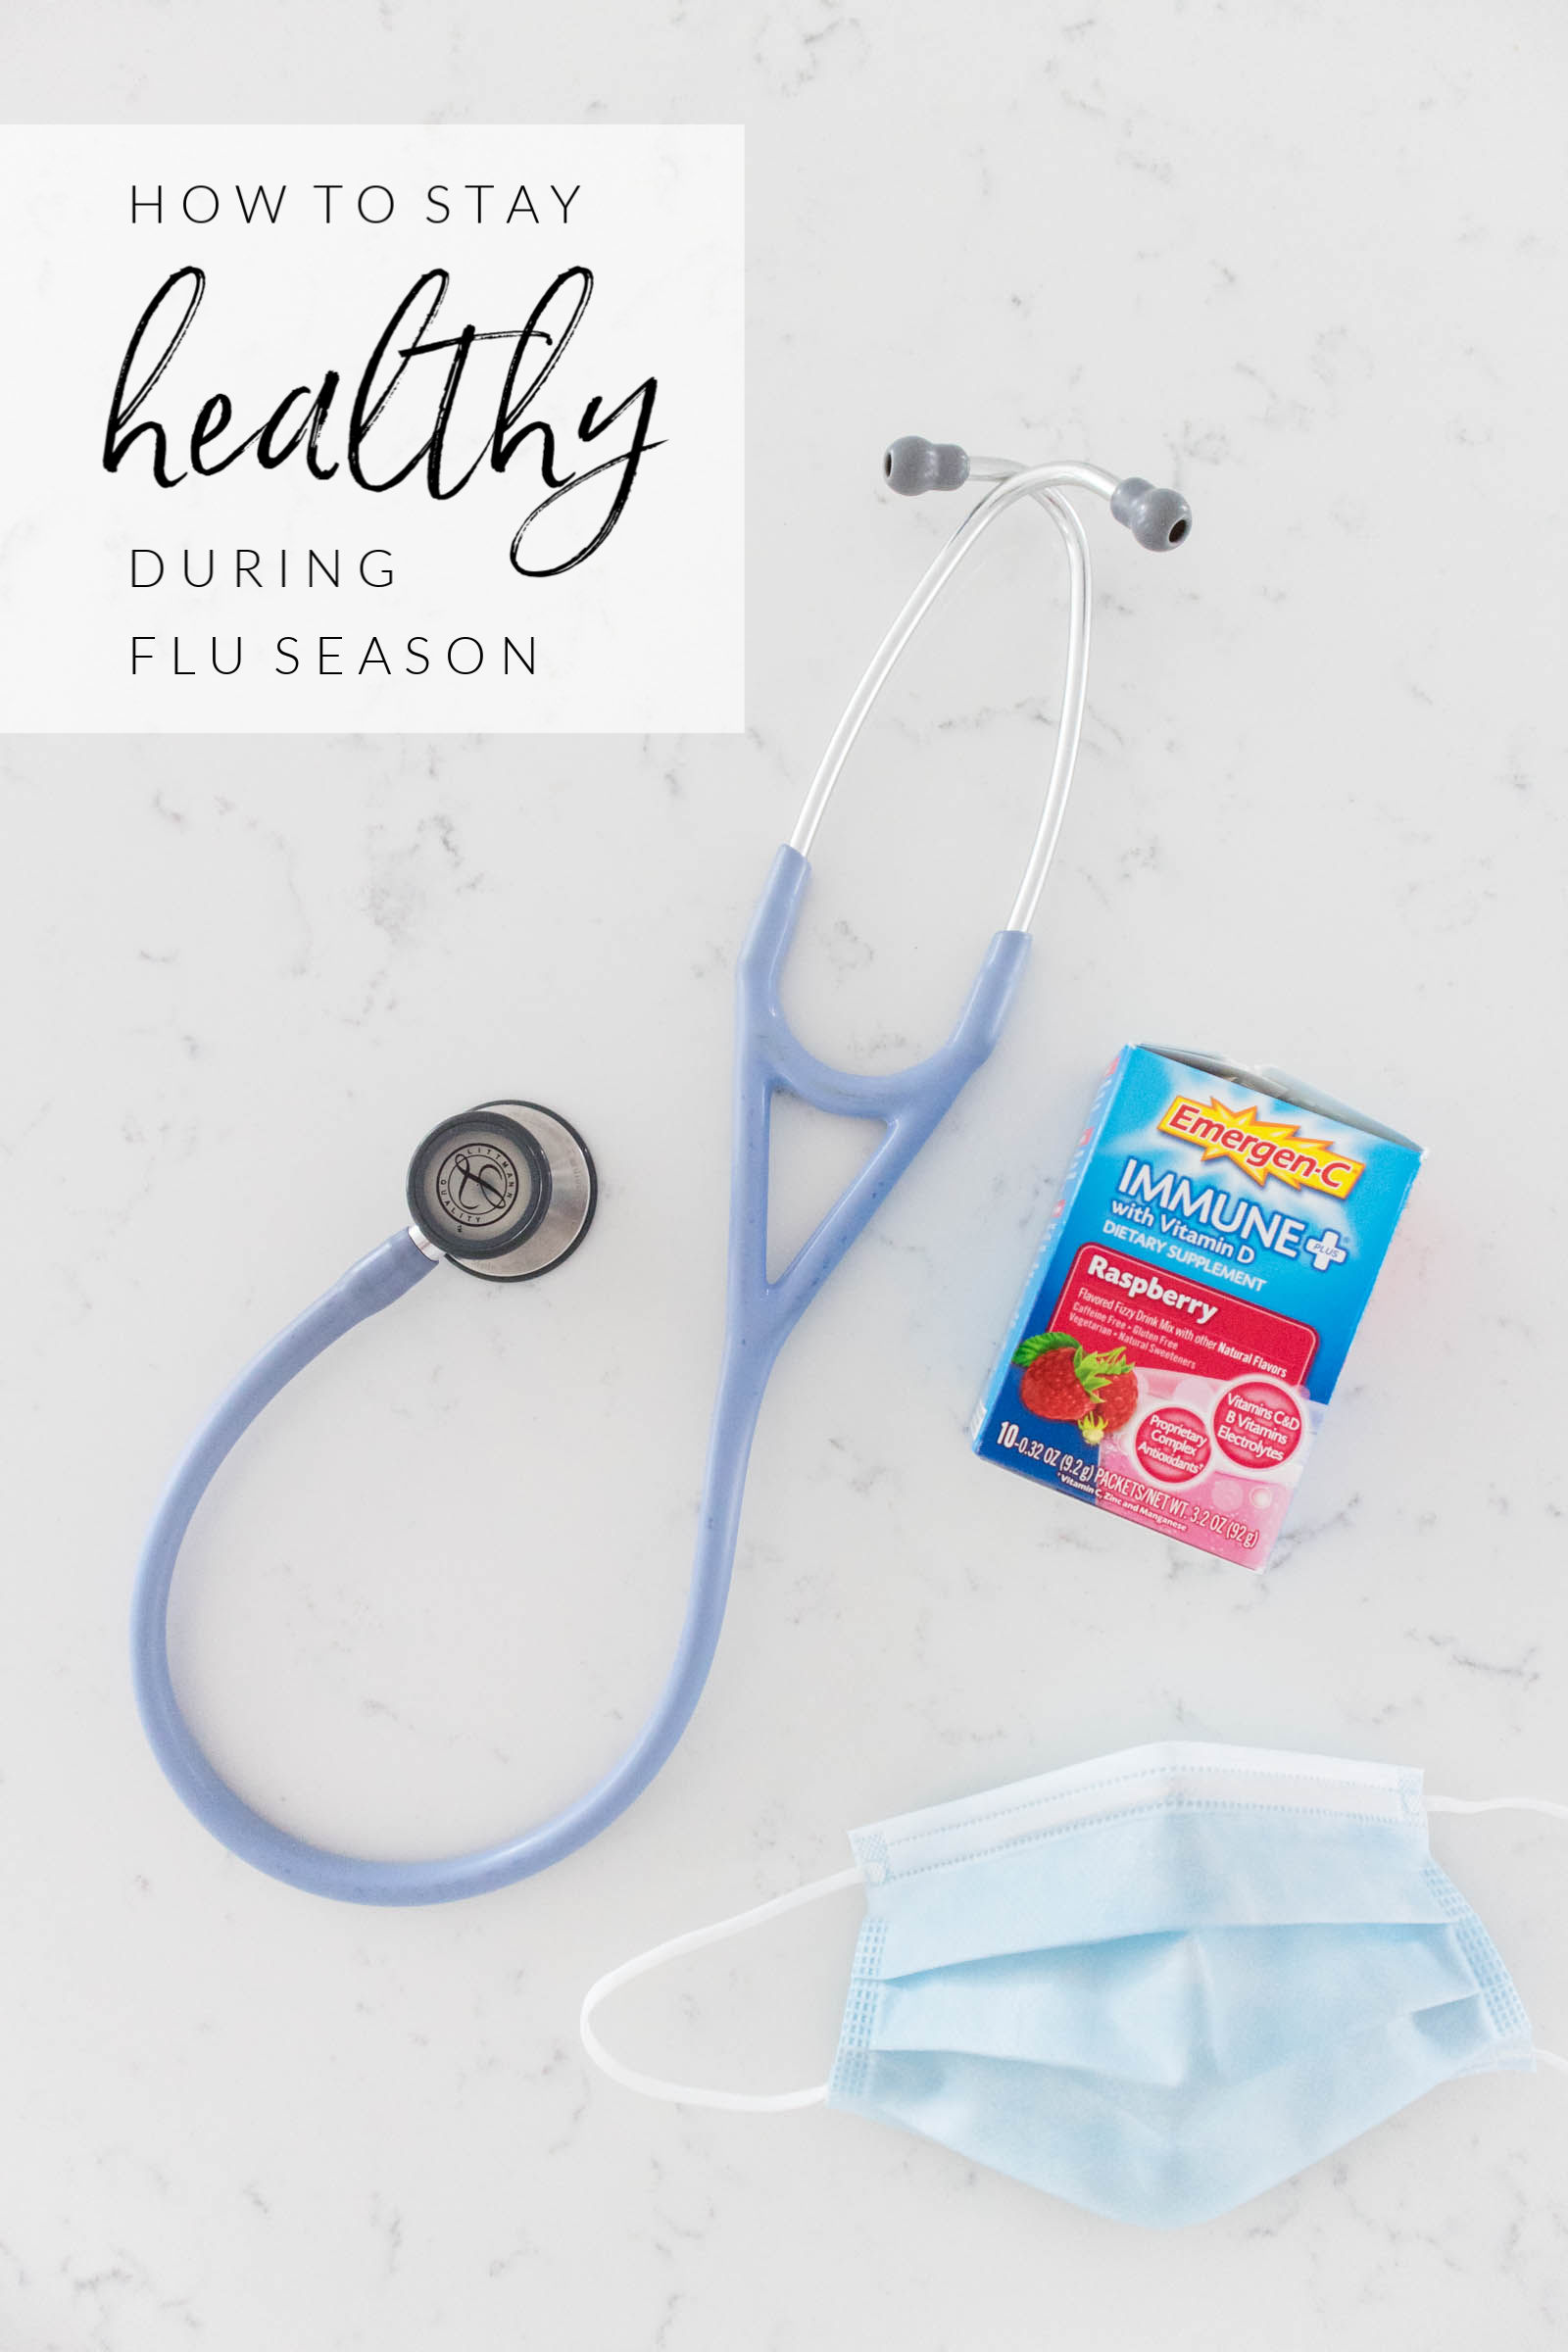 flu season health tips